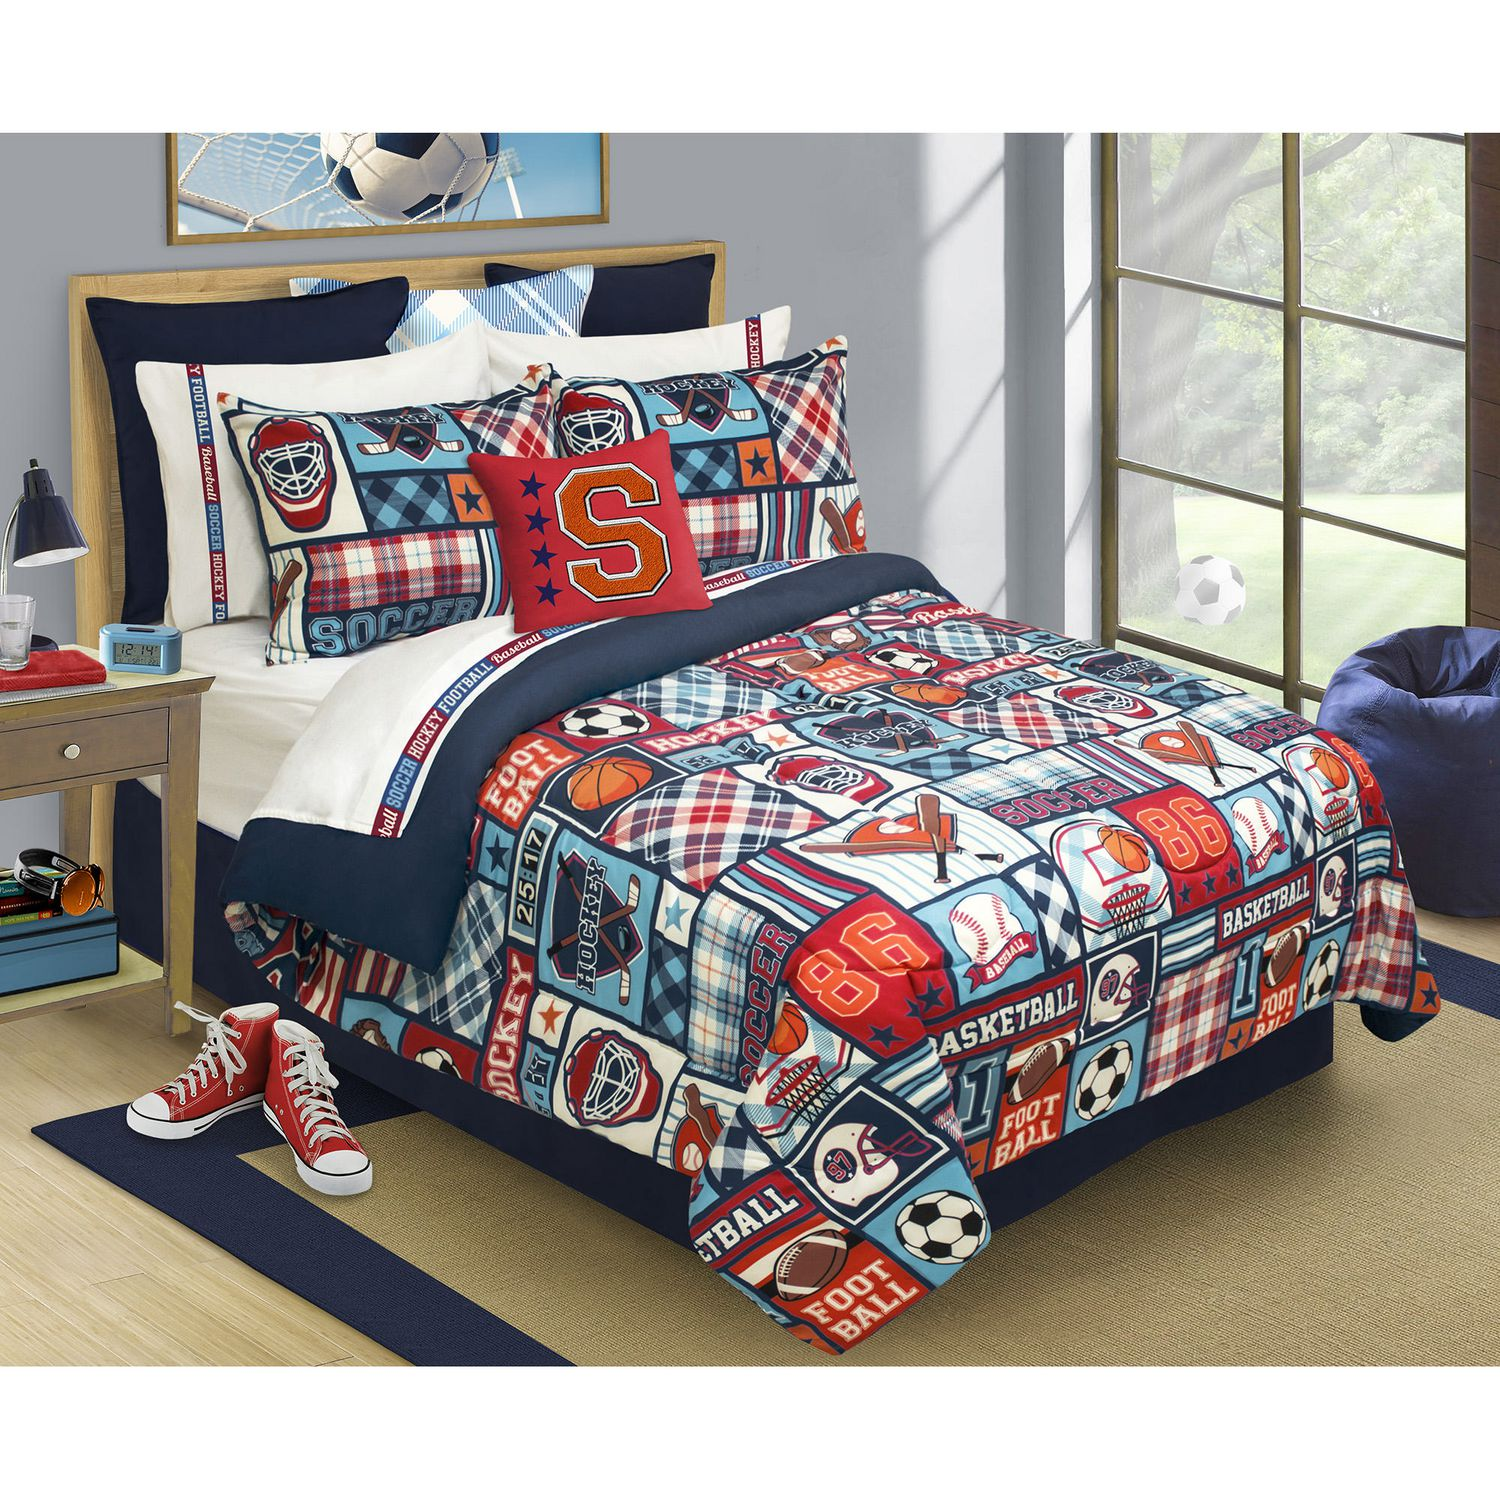 Walmart Home Store: Safdie & Co. Home Deluxe Collection Multi Color 100